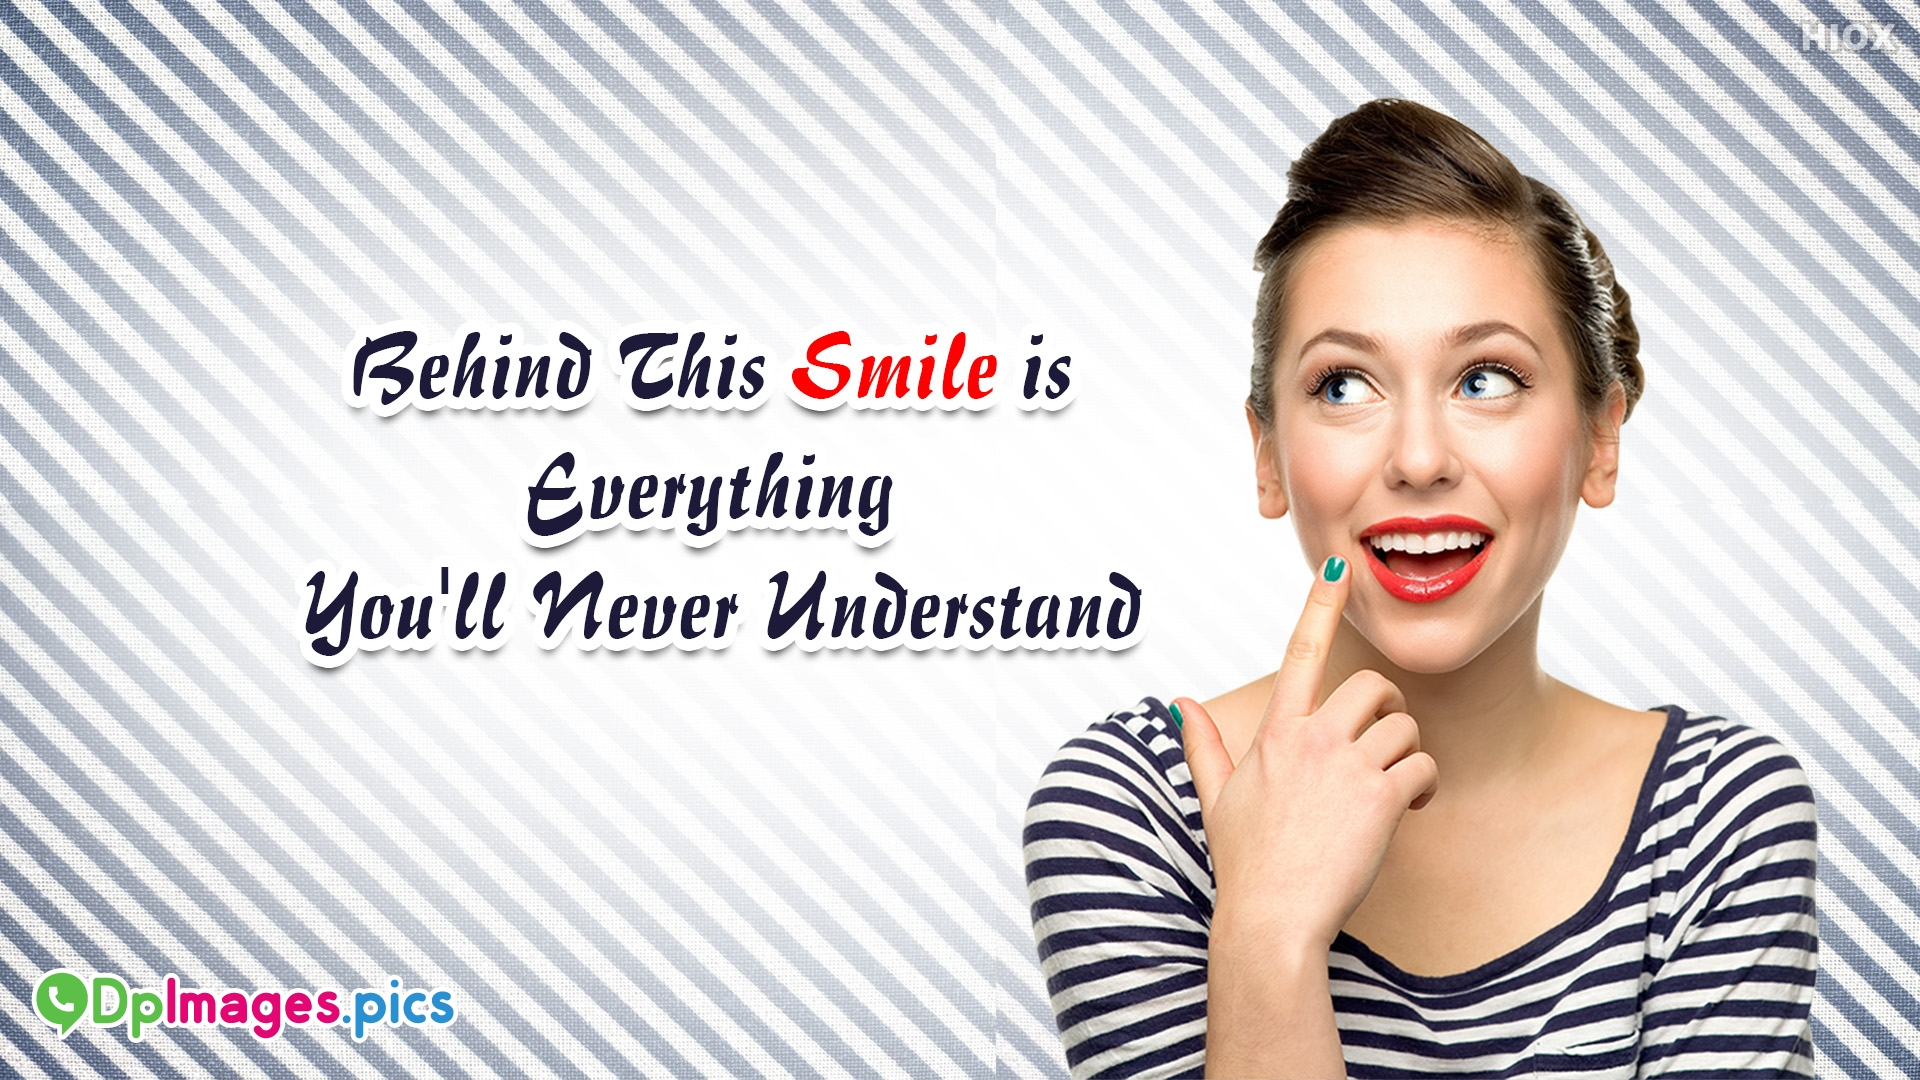 Behind This Smile Quotes